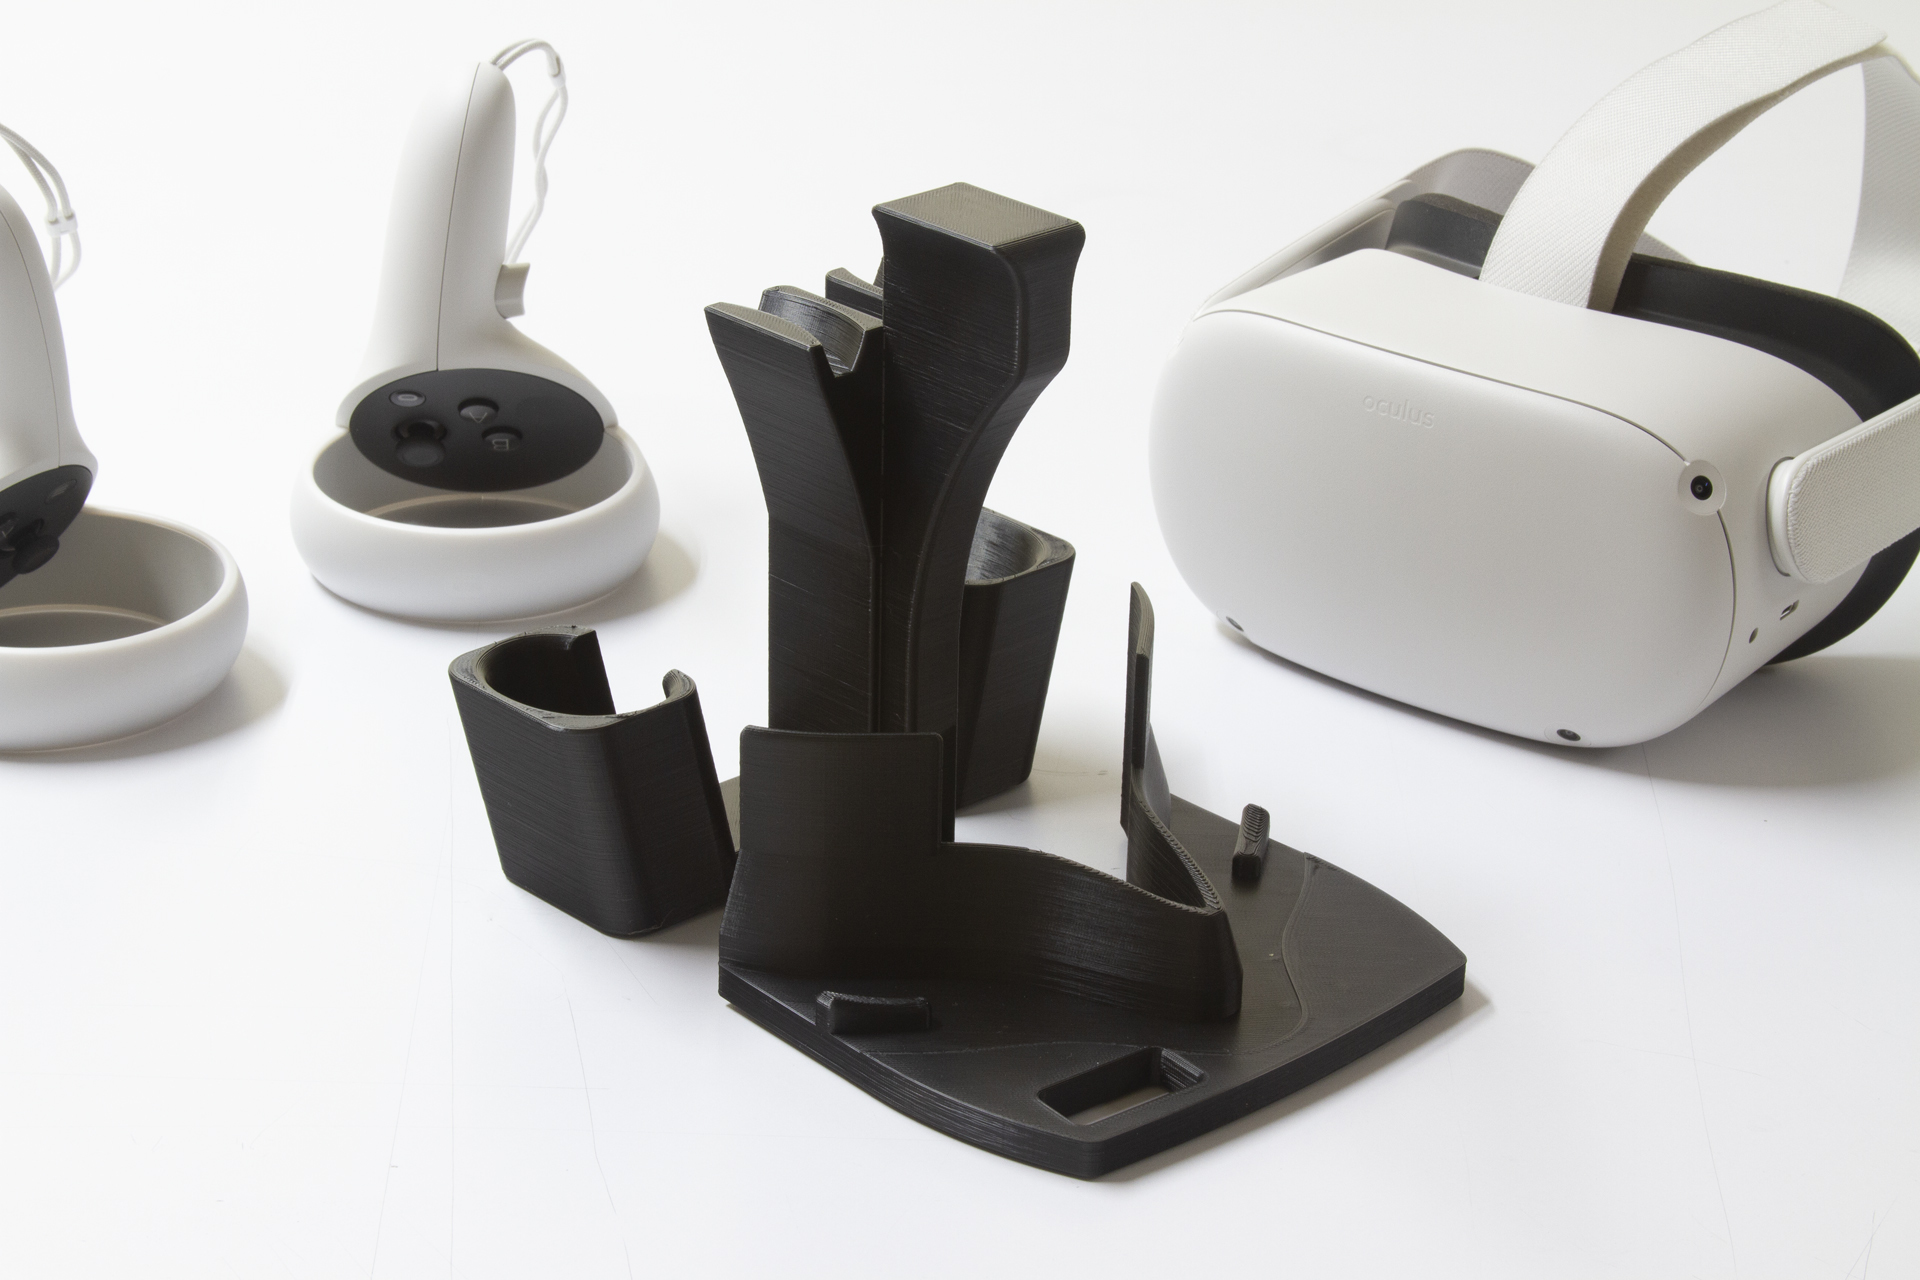 IMG_1263.jpg Download STL file OCULUS QUEST 2 STAND WITH CARRYING HANDLE FOR EASY RELOCATION • 3D printable template, Replicrafts